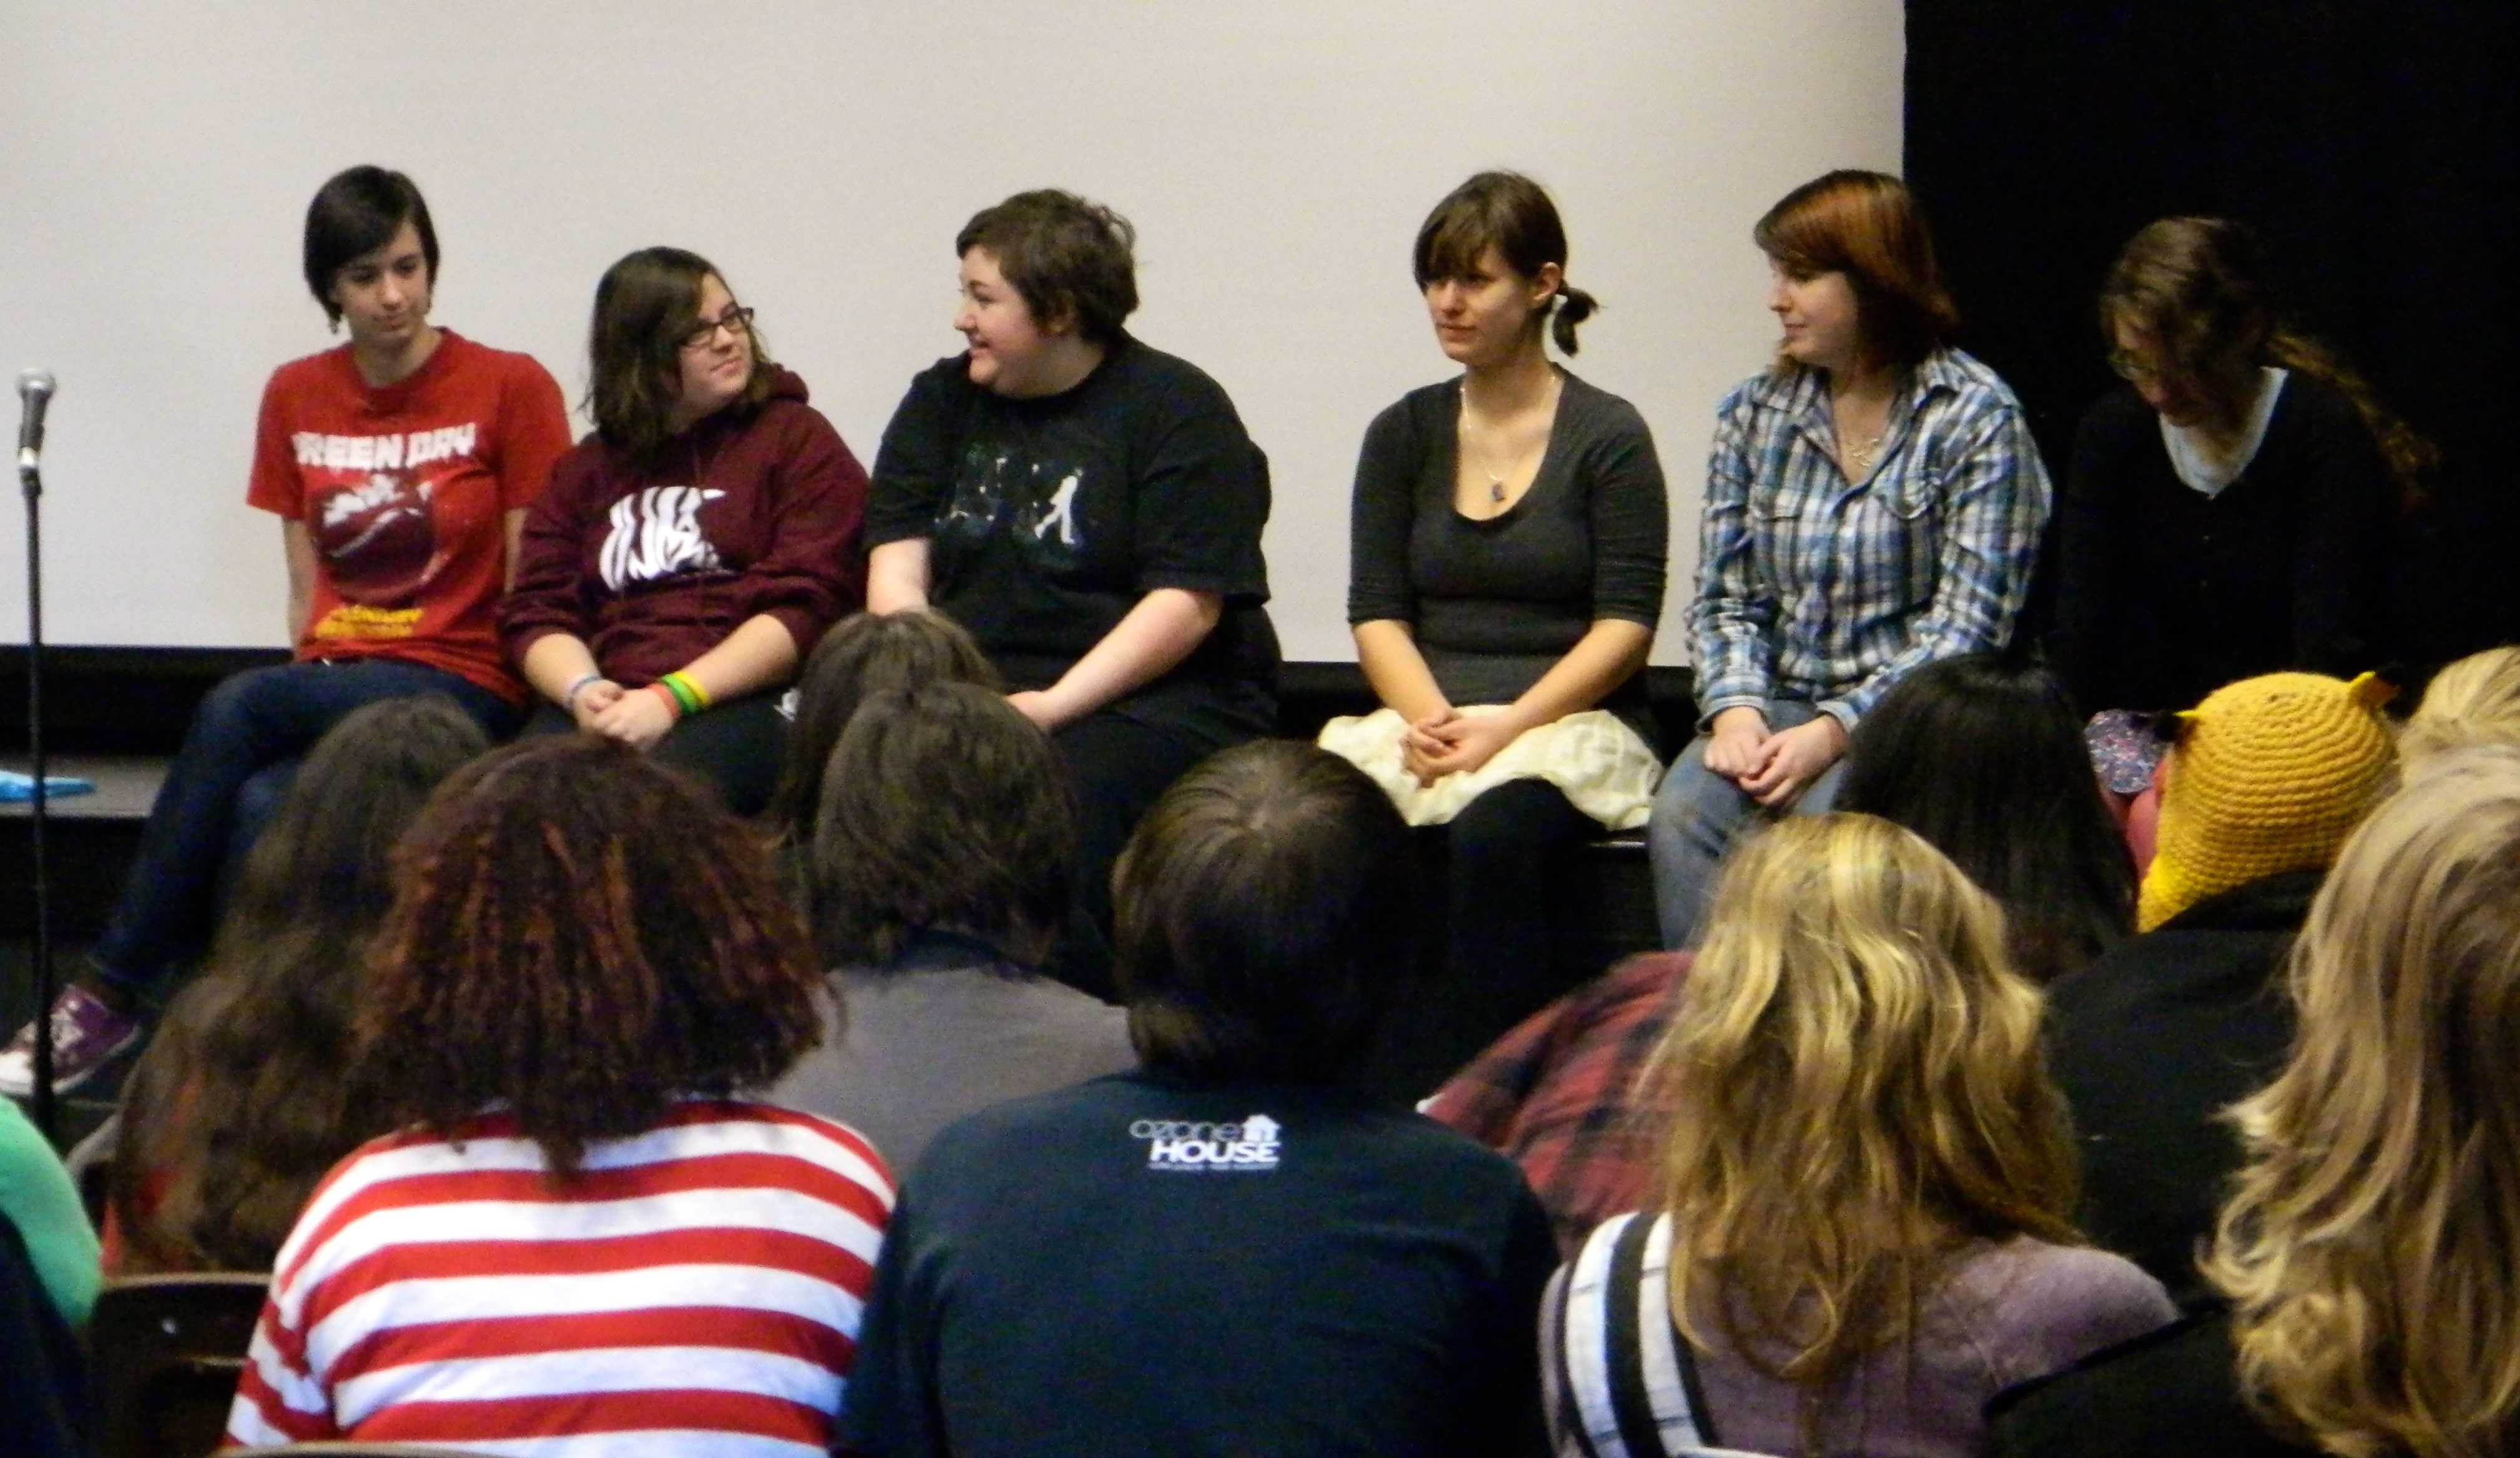 CET board members introduce themselves to prospective actors and crew.